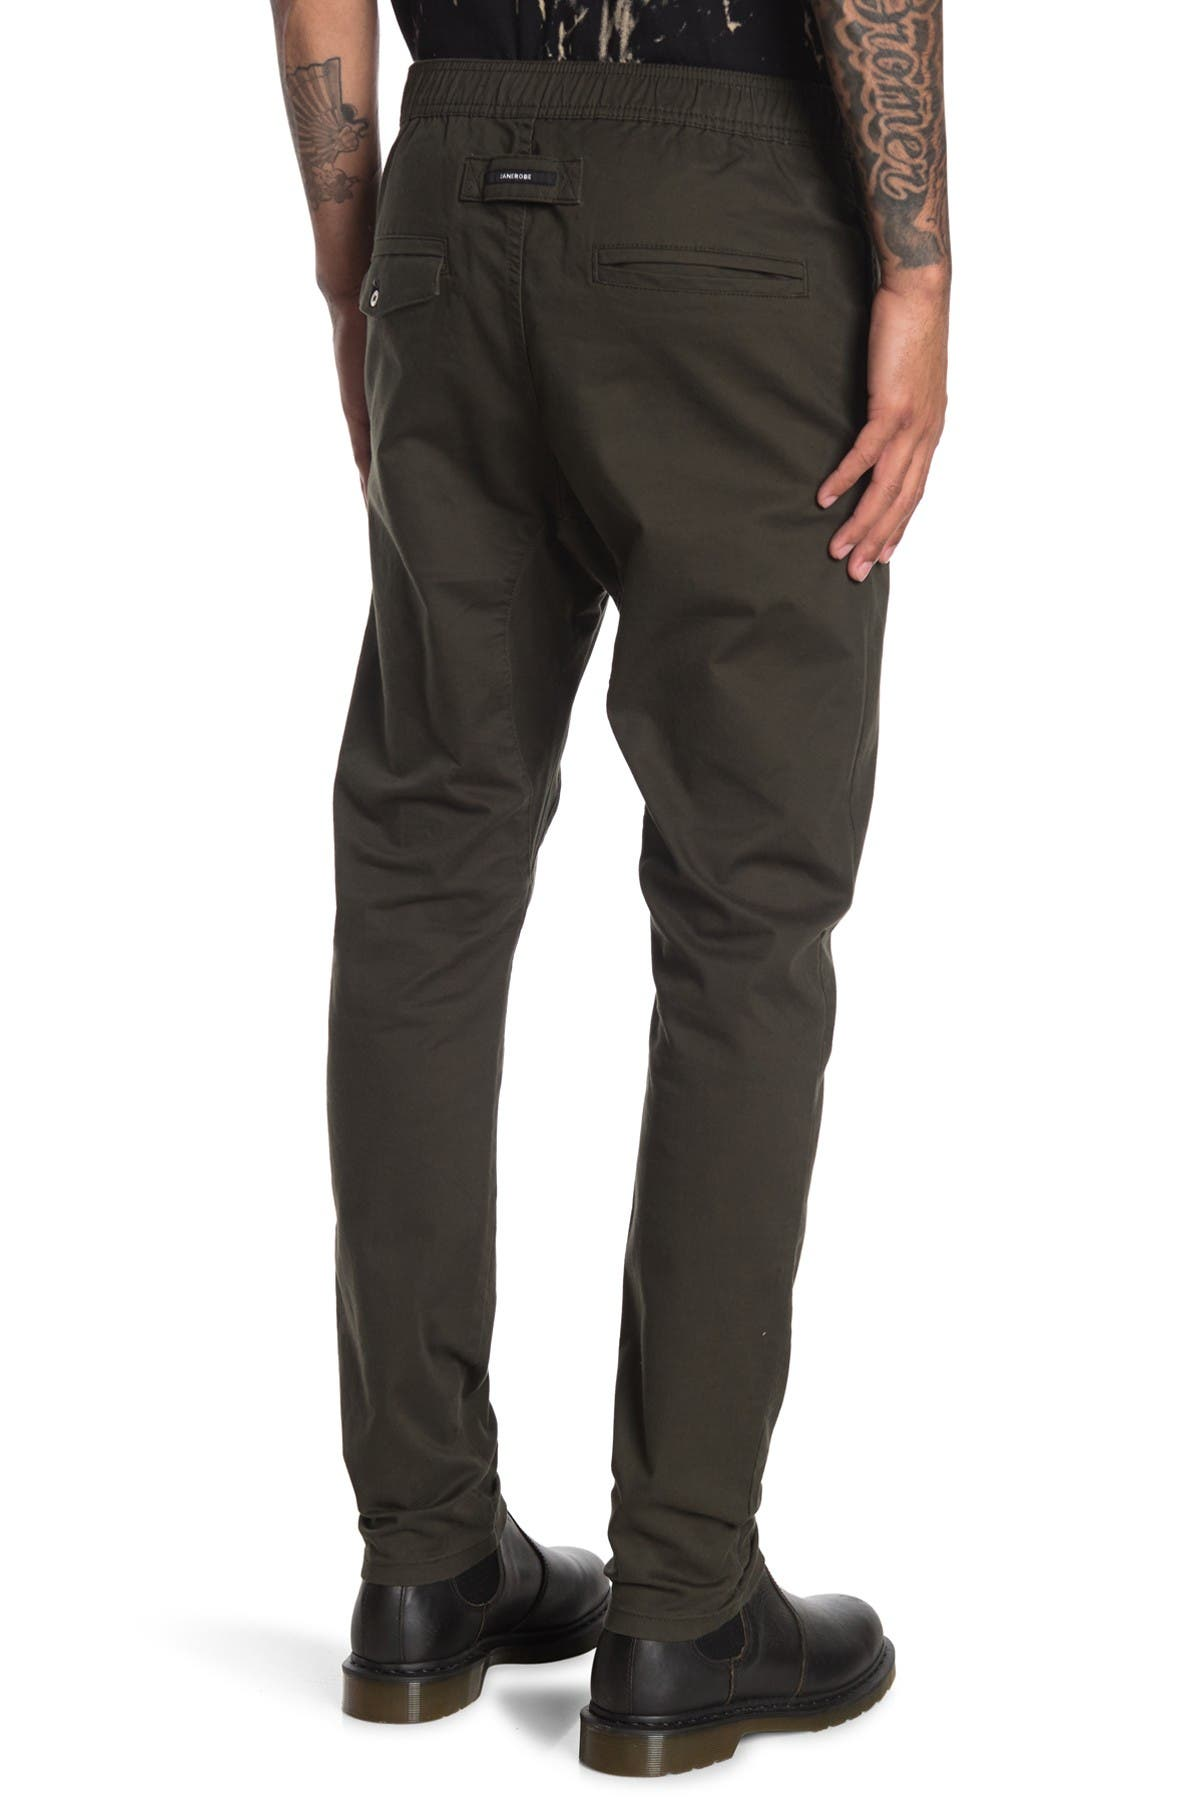 Image of Zanerobe Sureshot Chino Pants